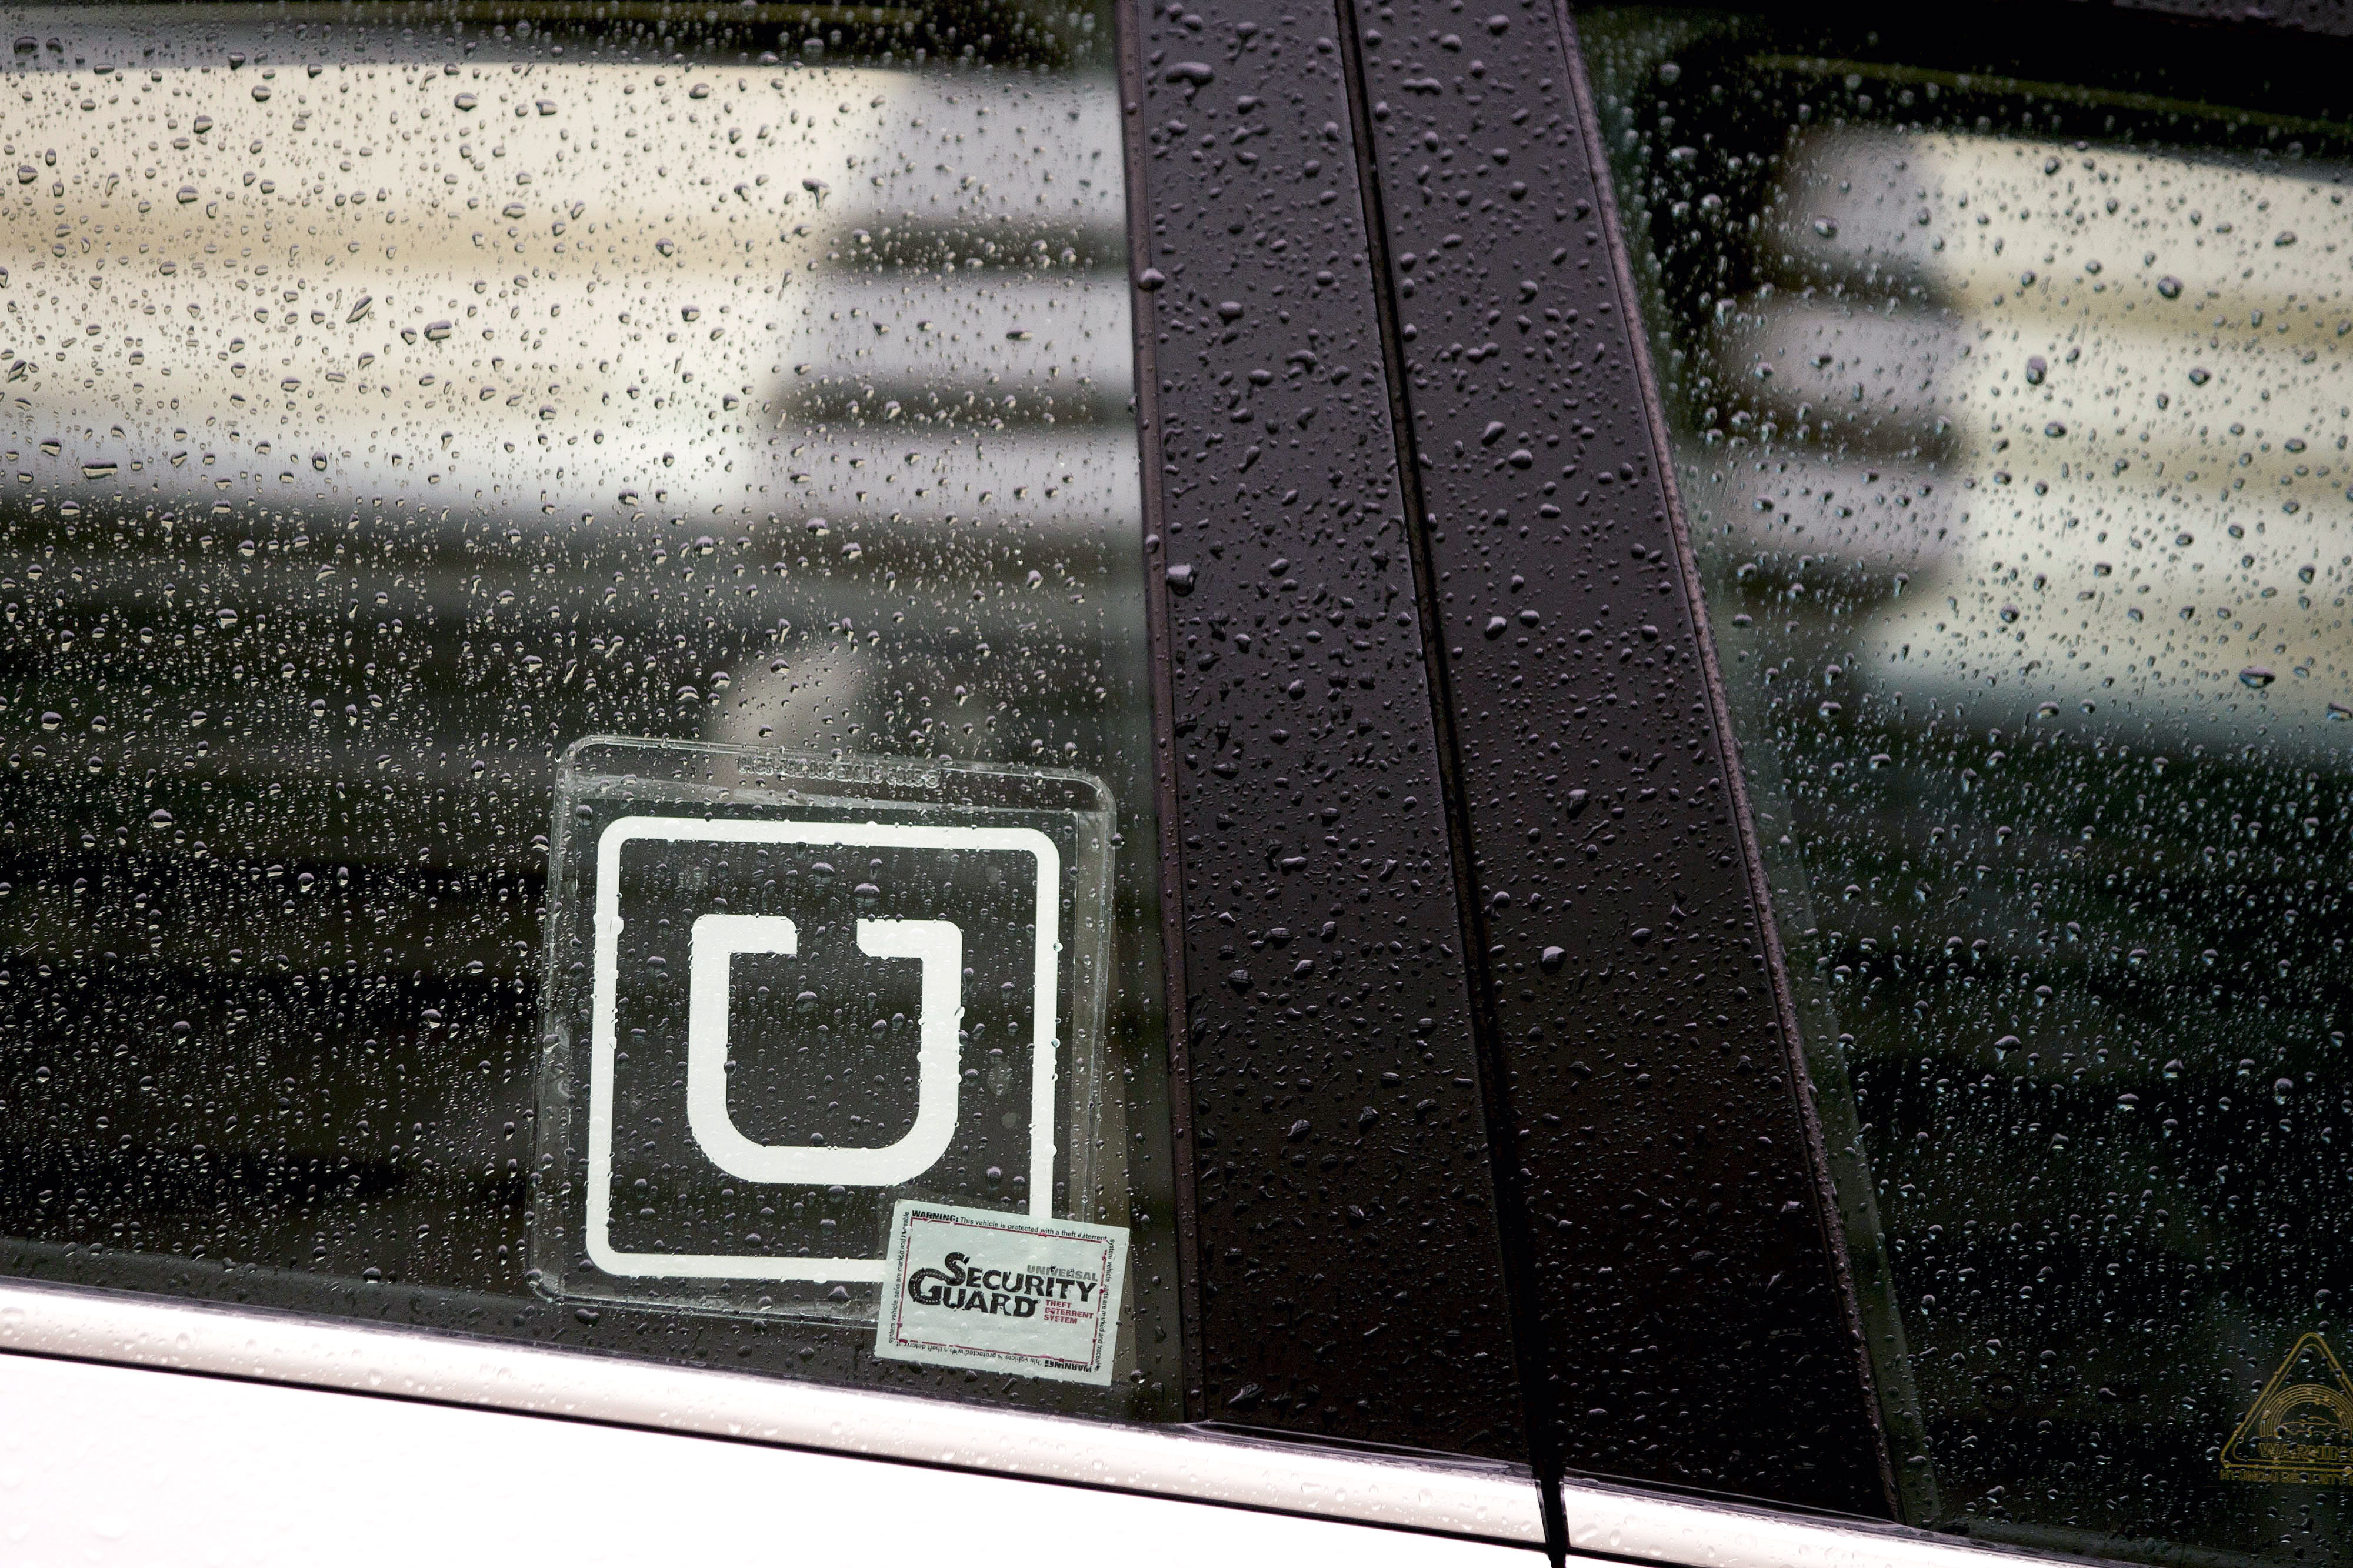 The Uber Technologies Inc. logo is displayed on the window of a vehicle after dropping off a passenger at Ronald Reagan National Airport (DCA) in Washington, D.C., U.S., on Wednesday, Nov. 26, 2014.